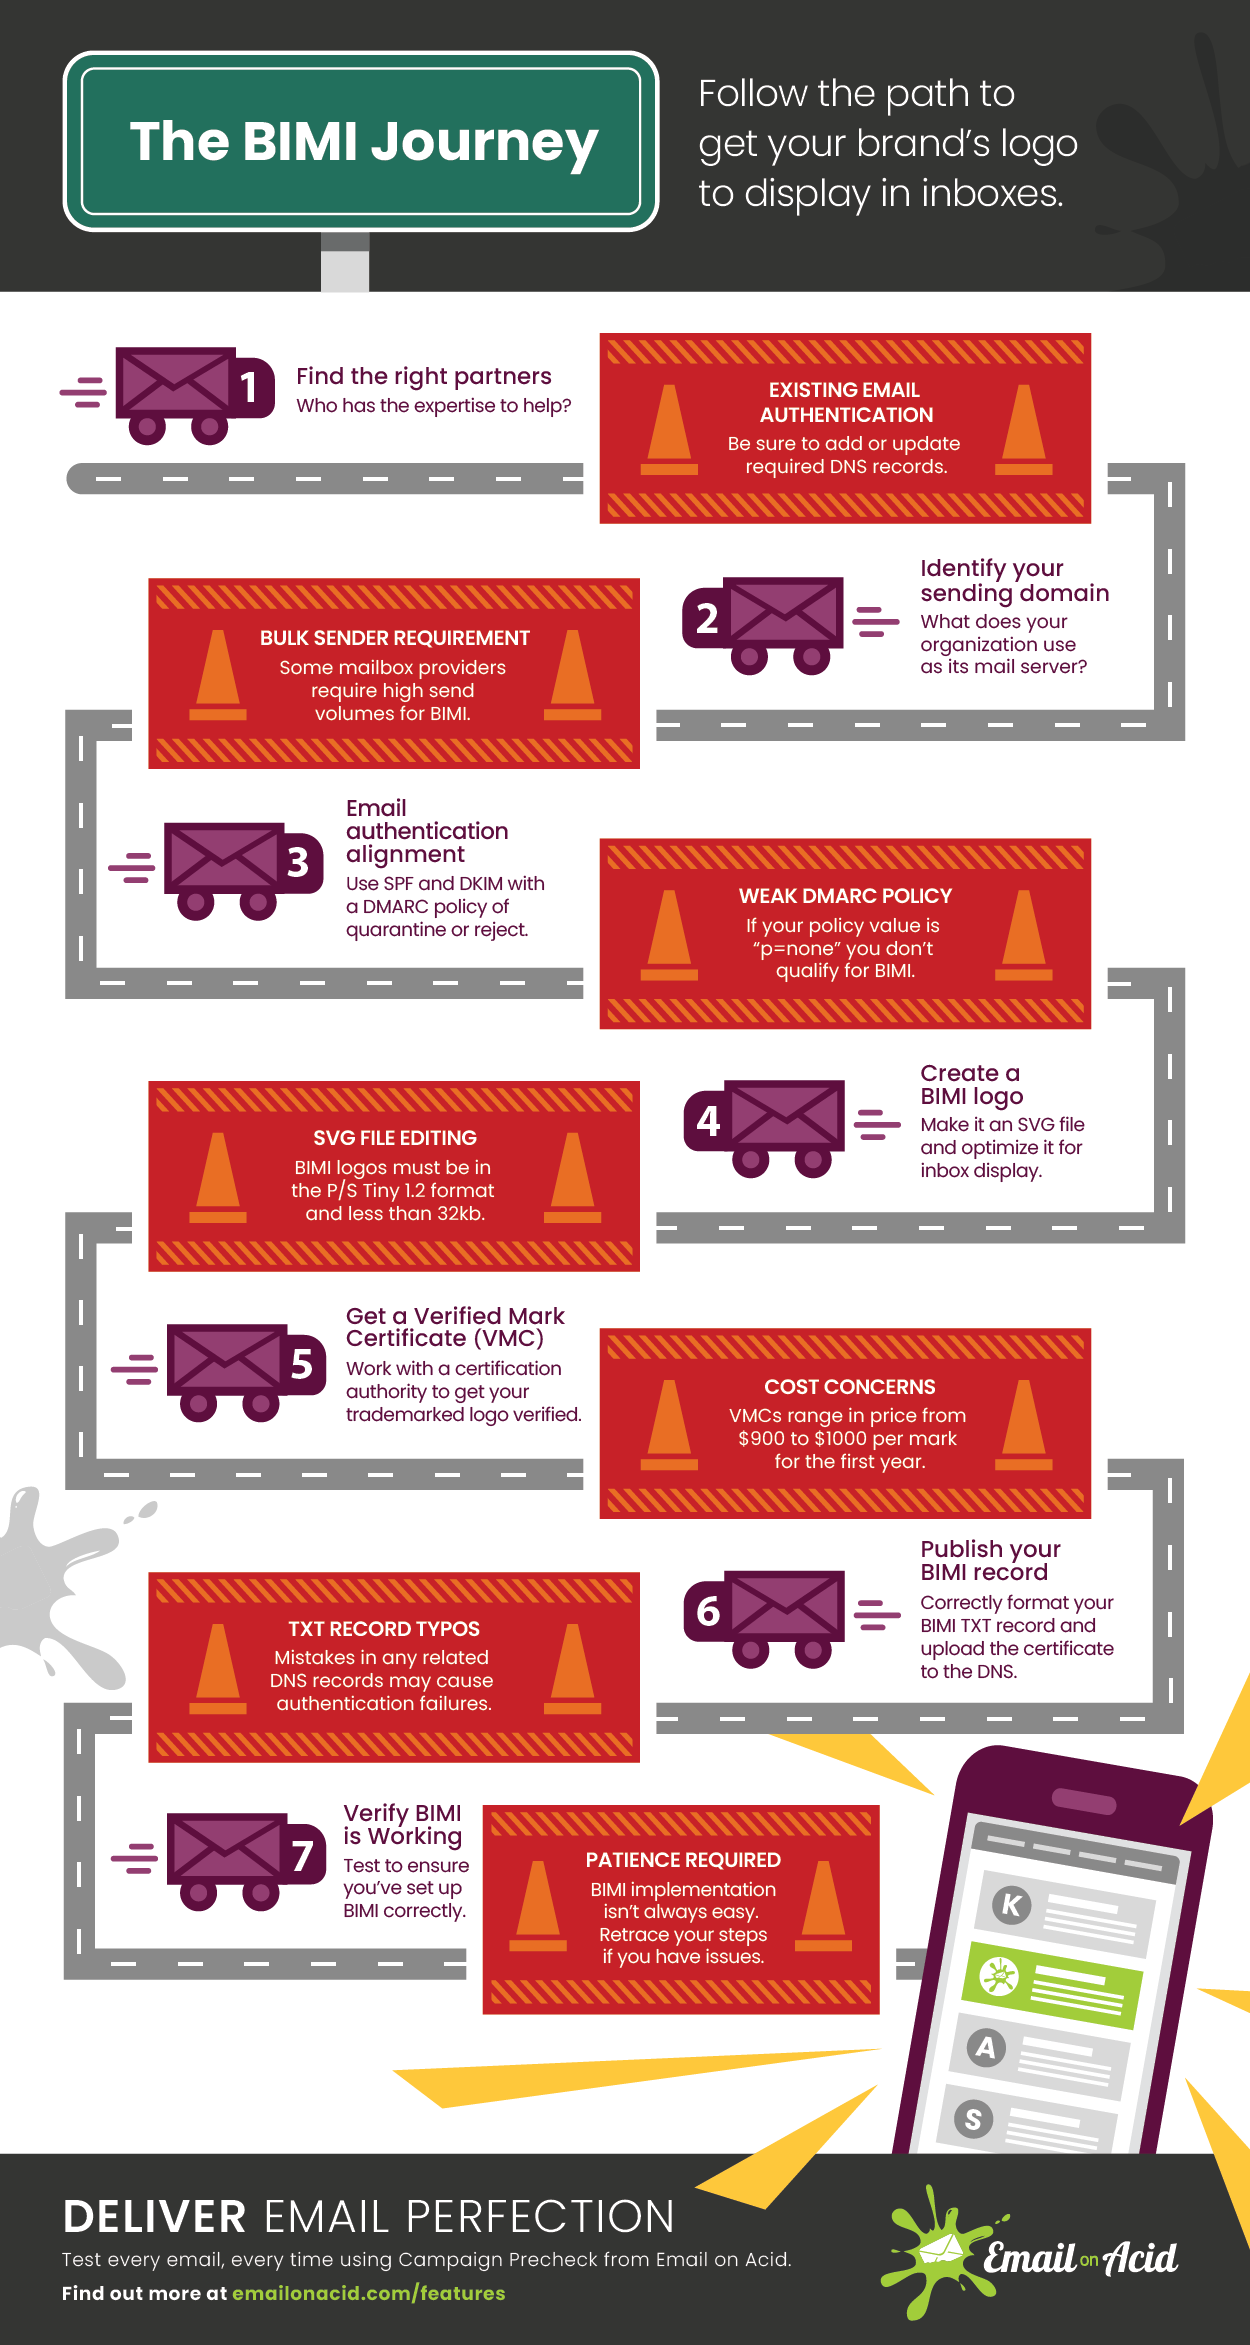 BIMI implementation infographic with steps